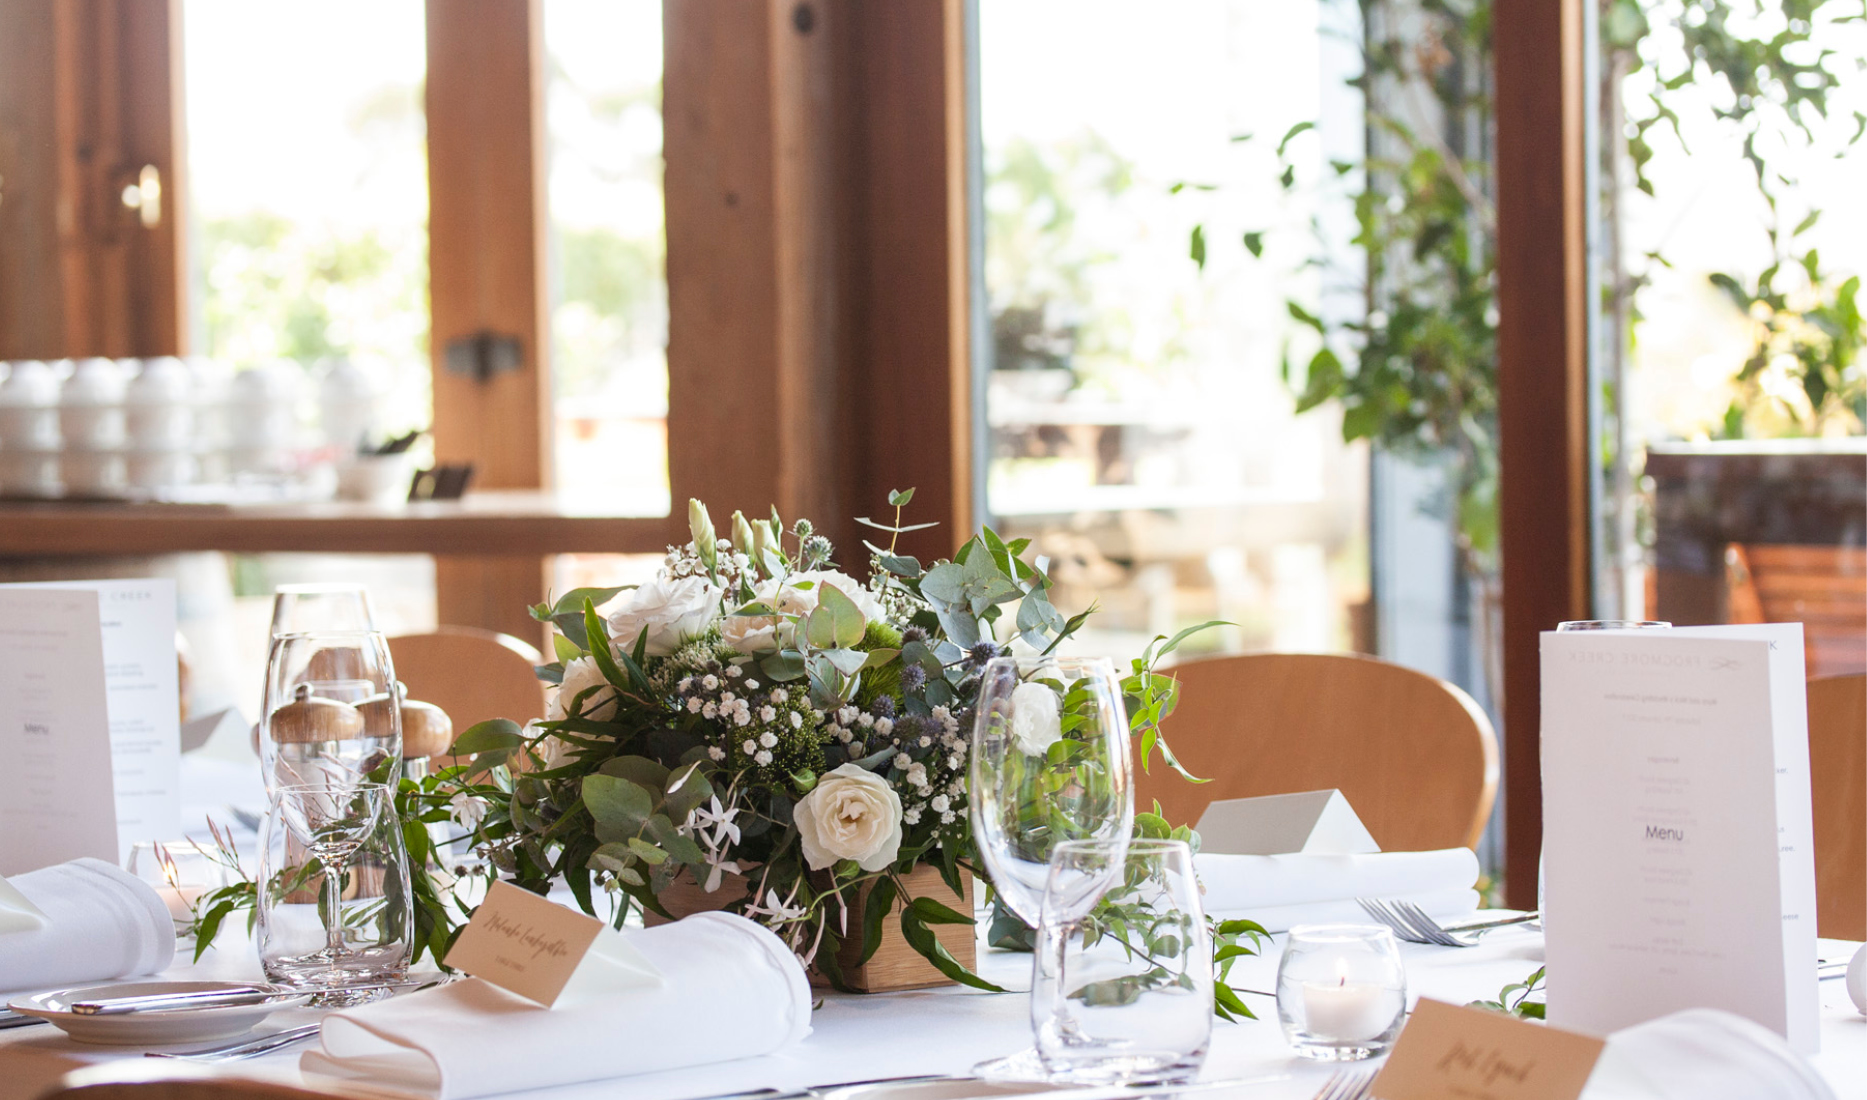 Centrepieces_ _ Winery_ Myra and Nick_ Wedding styling _ Style my day